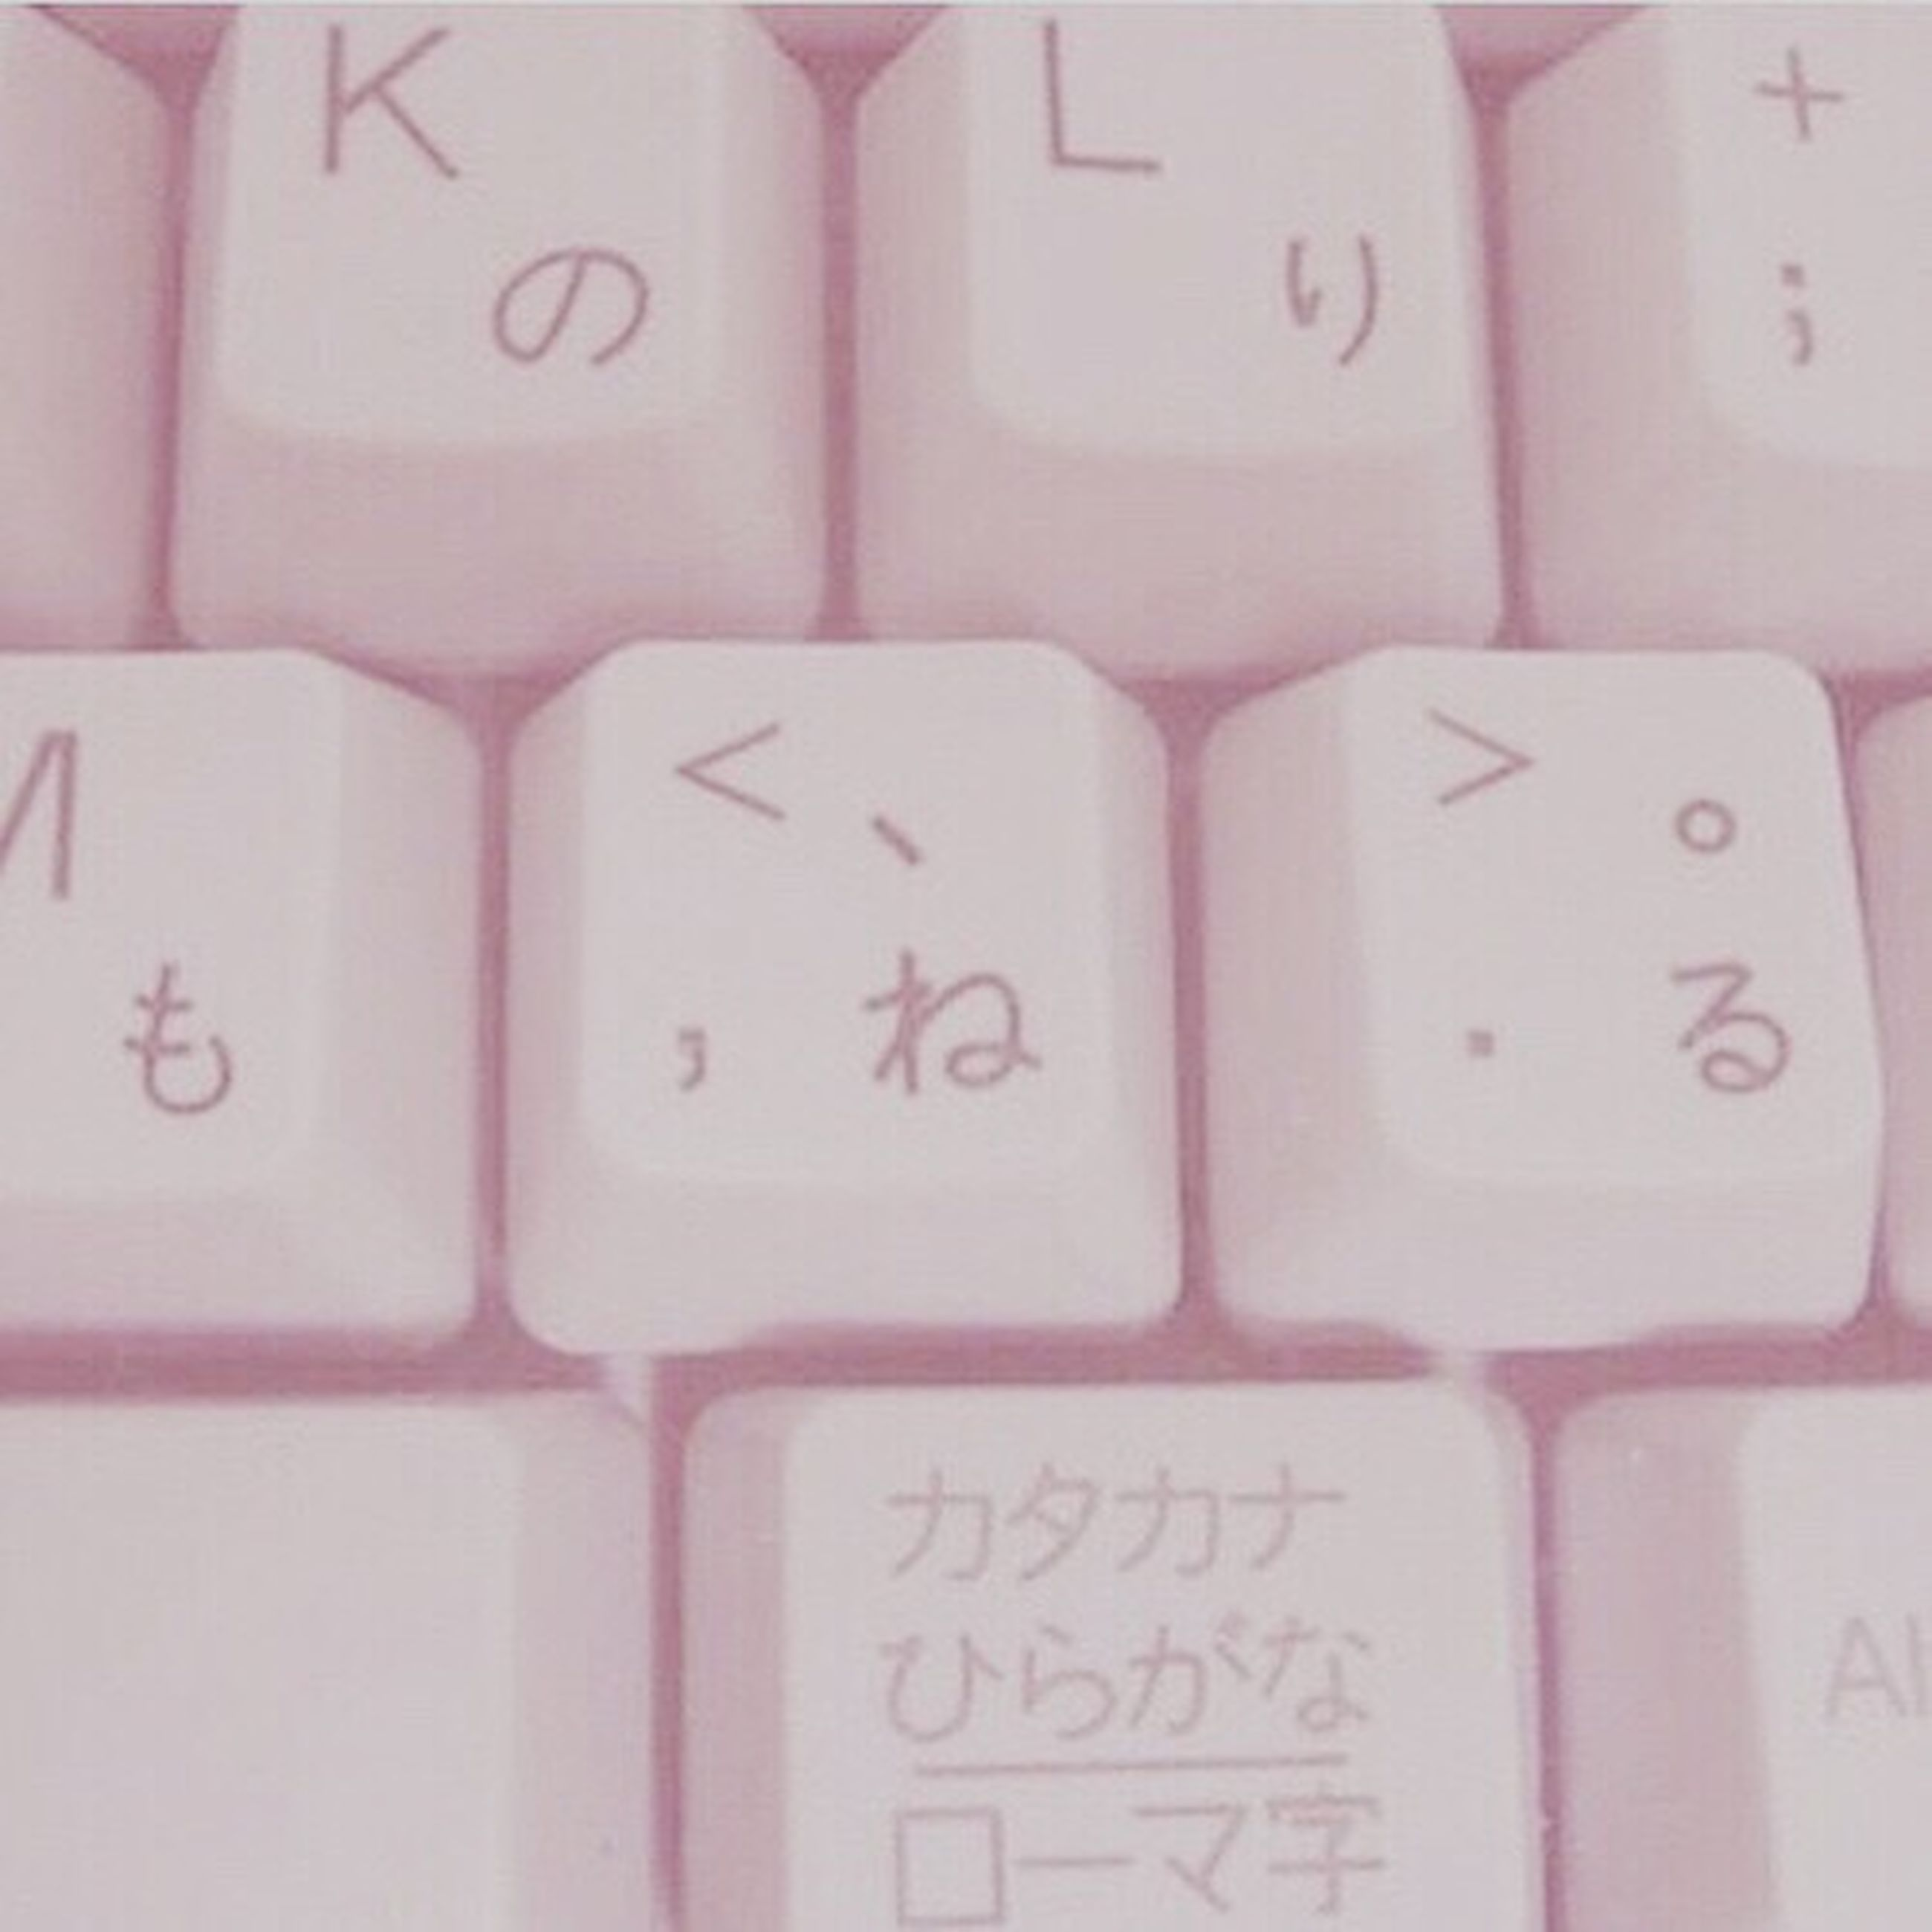 pink color, communication, computer keyboard, close-up, text, no people, alphabet, studio shot, computer key, full frame, indoors, gambling, pastel colored, day